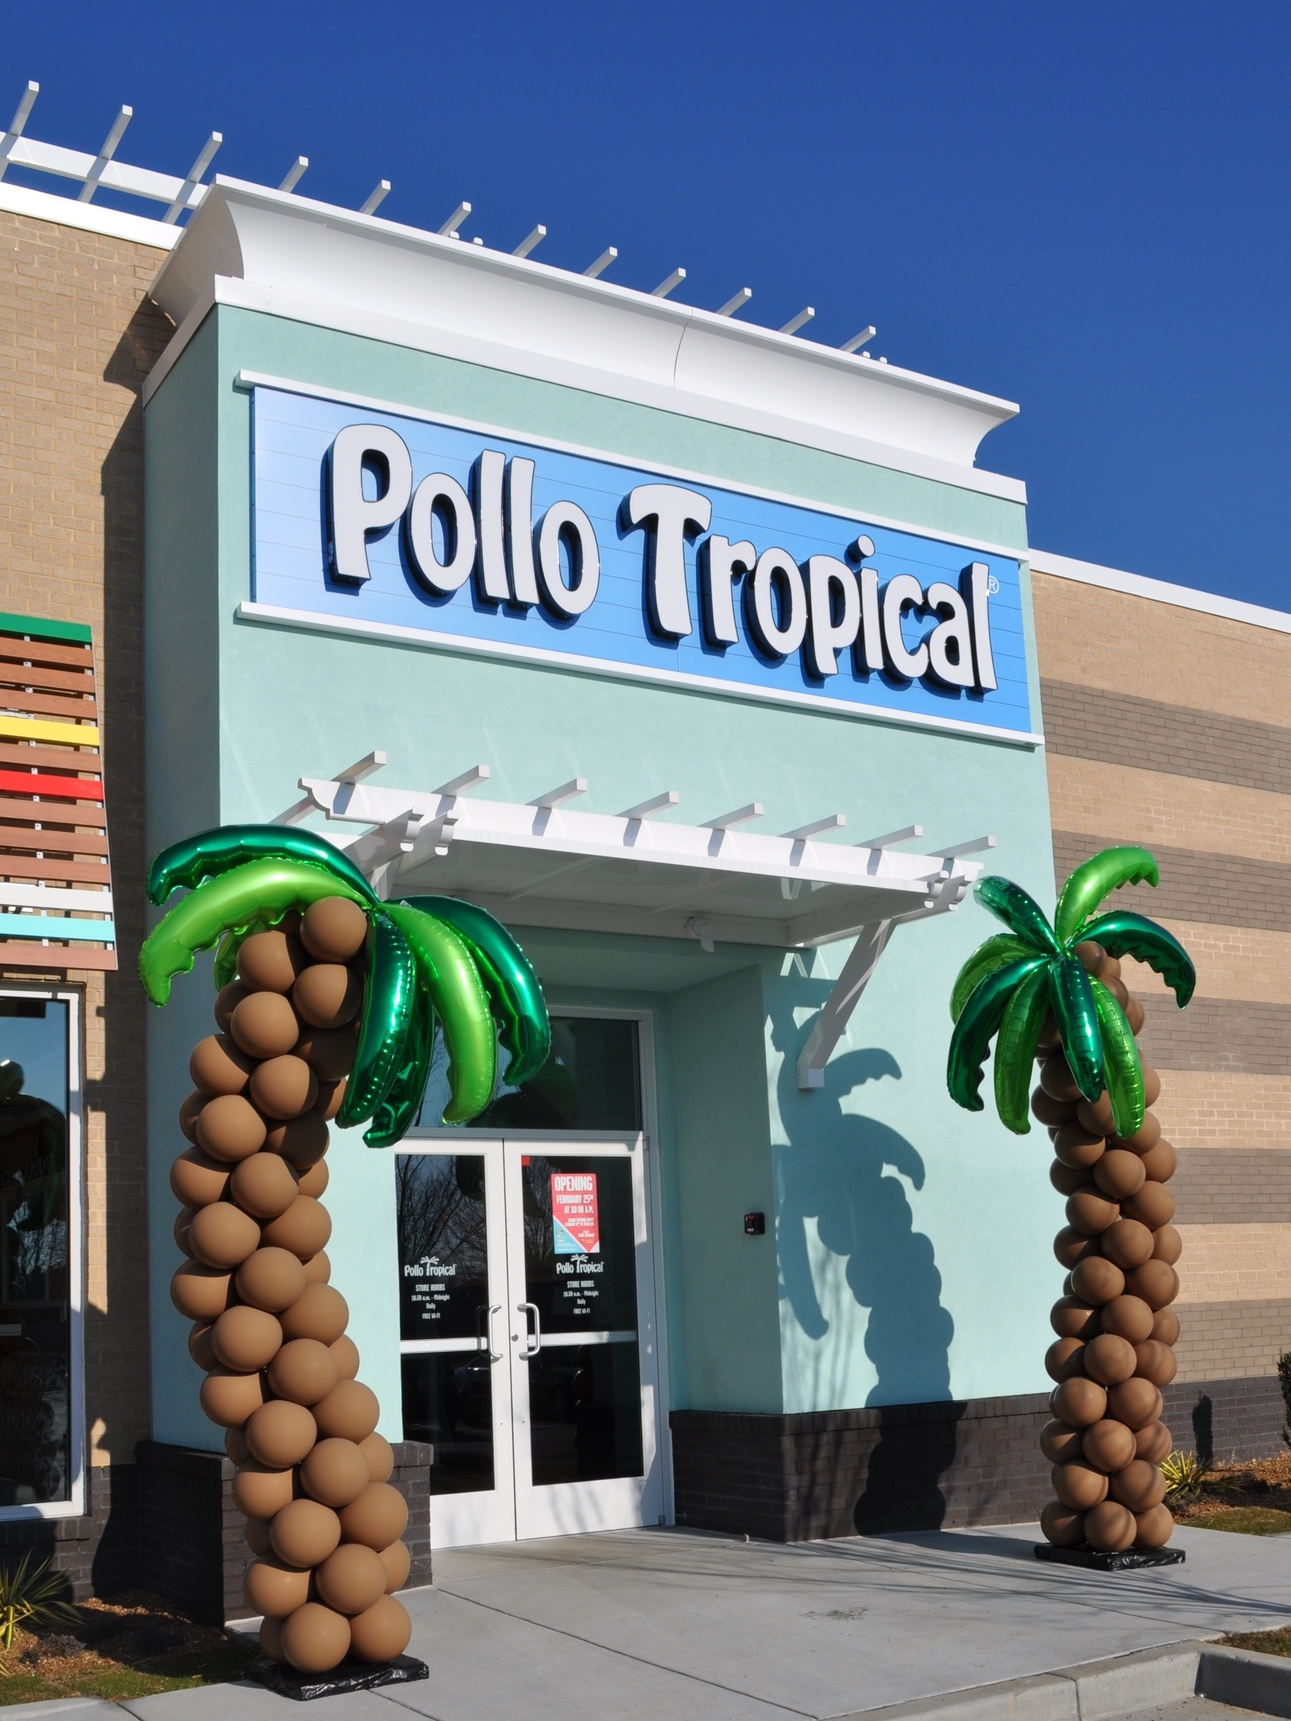 Balloon palm trees for Pollo Tropical